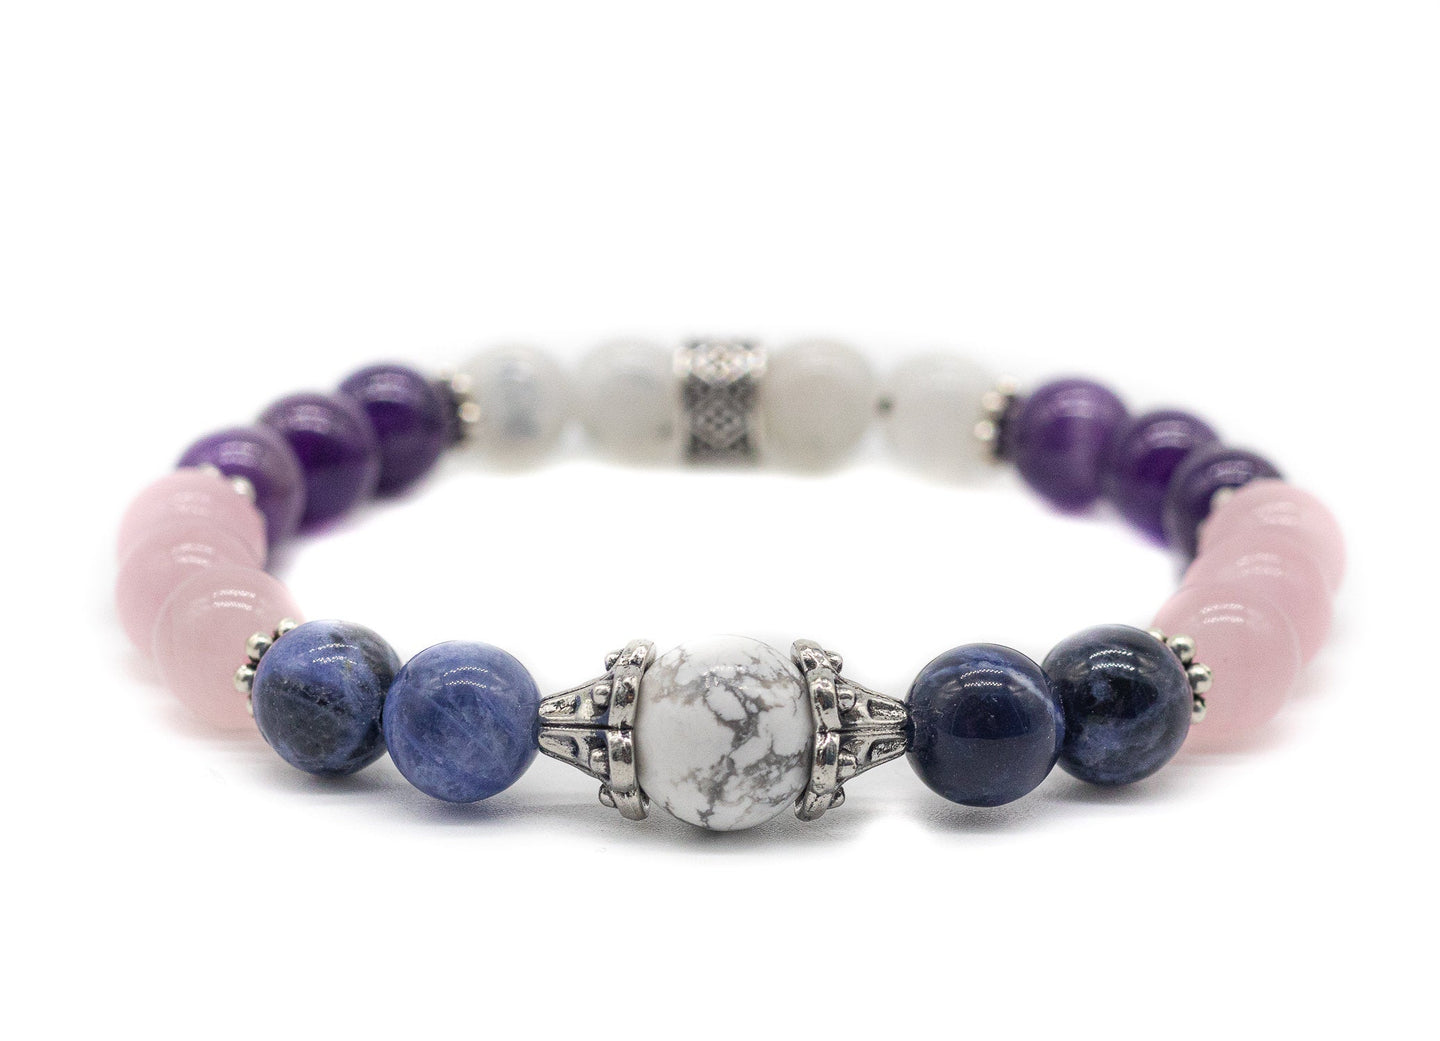 Anti-anxiety crystal bracelet that helps with panic attacks and stress. Made of rose quartz, sodalite, lepidolite, moonstone and hoplite. Product of calmerspirit.com